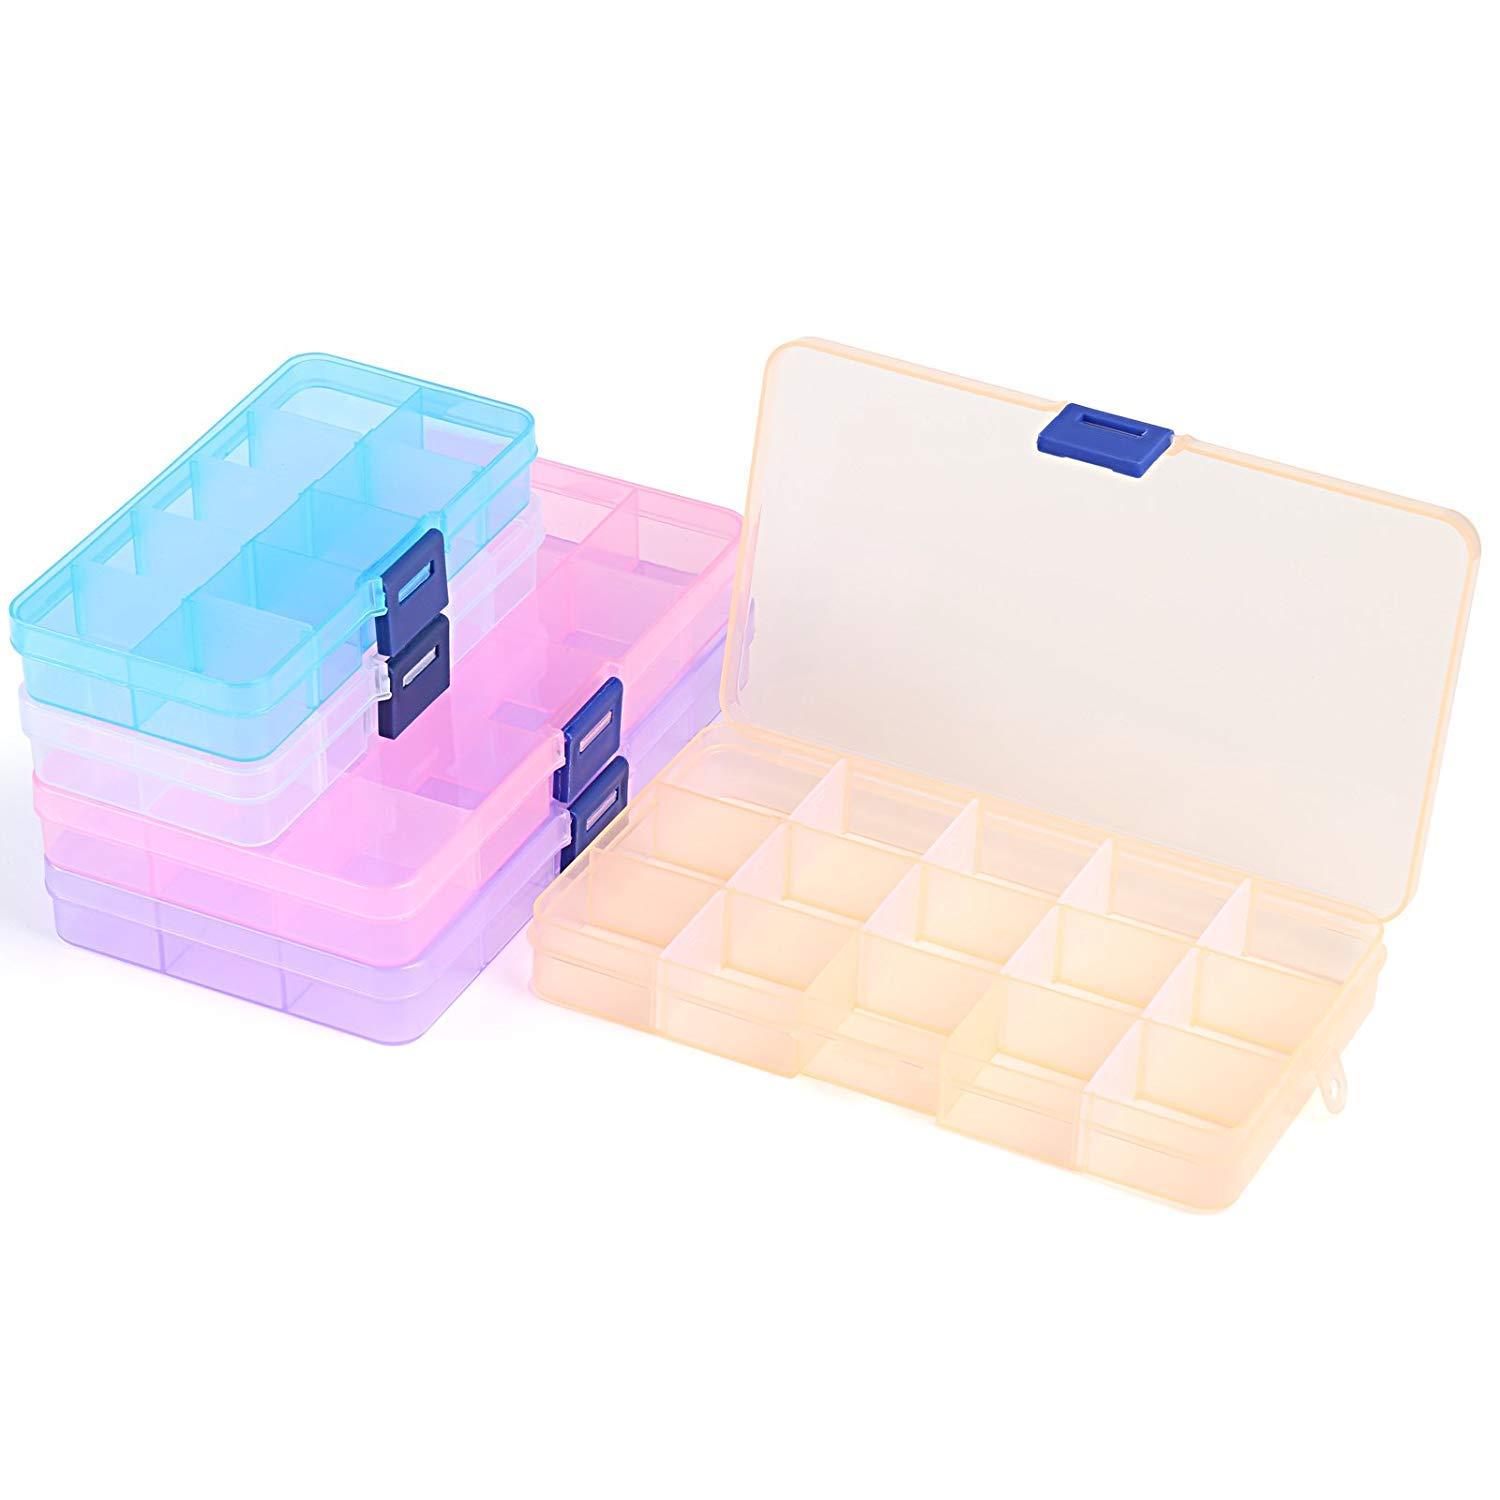 Earring Fishing Hook Plastic Jewelry Box with Movable Dividers Containers for Beads Ring Small Accessories 3pcs 15 grids, 2pcs 10 grids, 5 Colors Lightweight Tool LEMESO 5pcs Jewelry Organizer